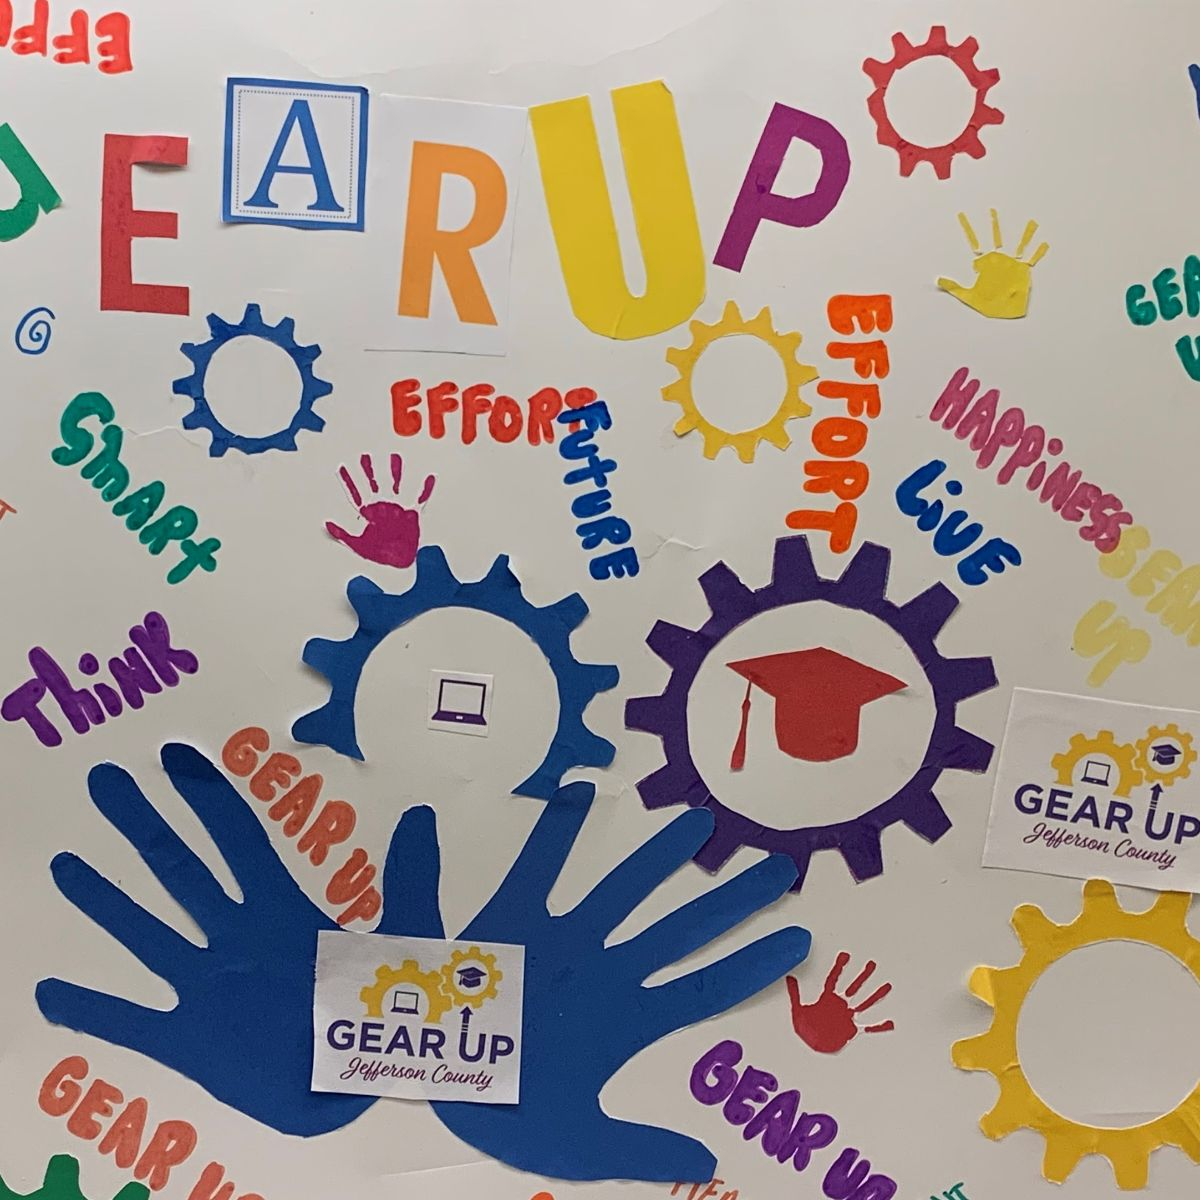 GEAR UP Jefferson County poster created by students.